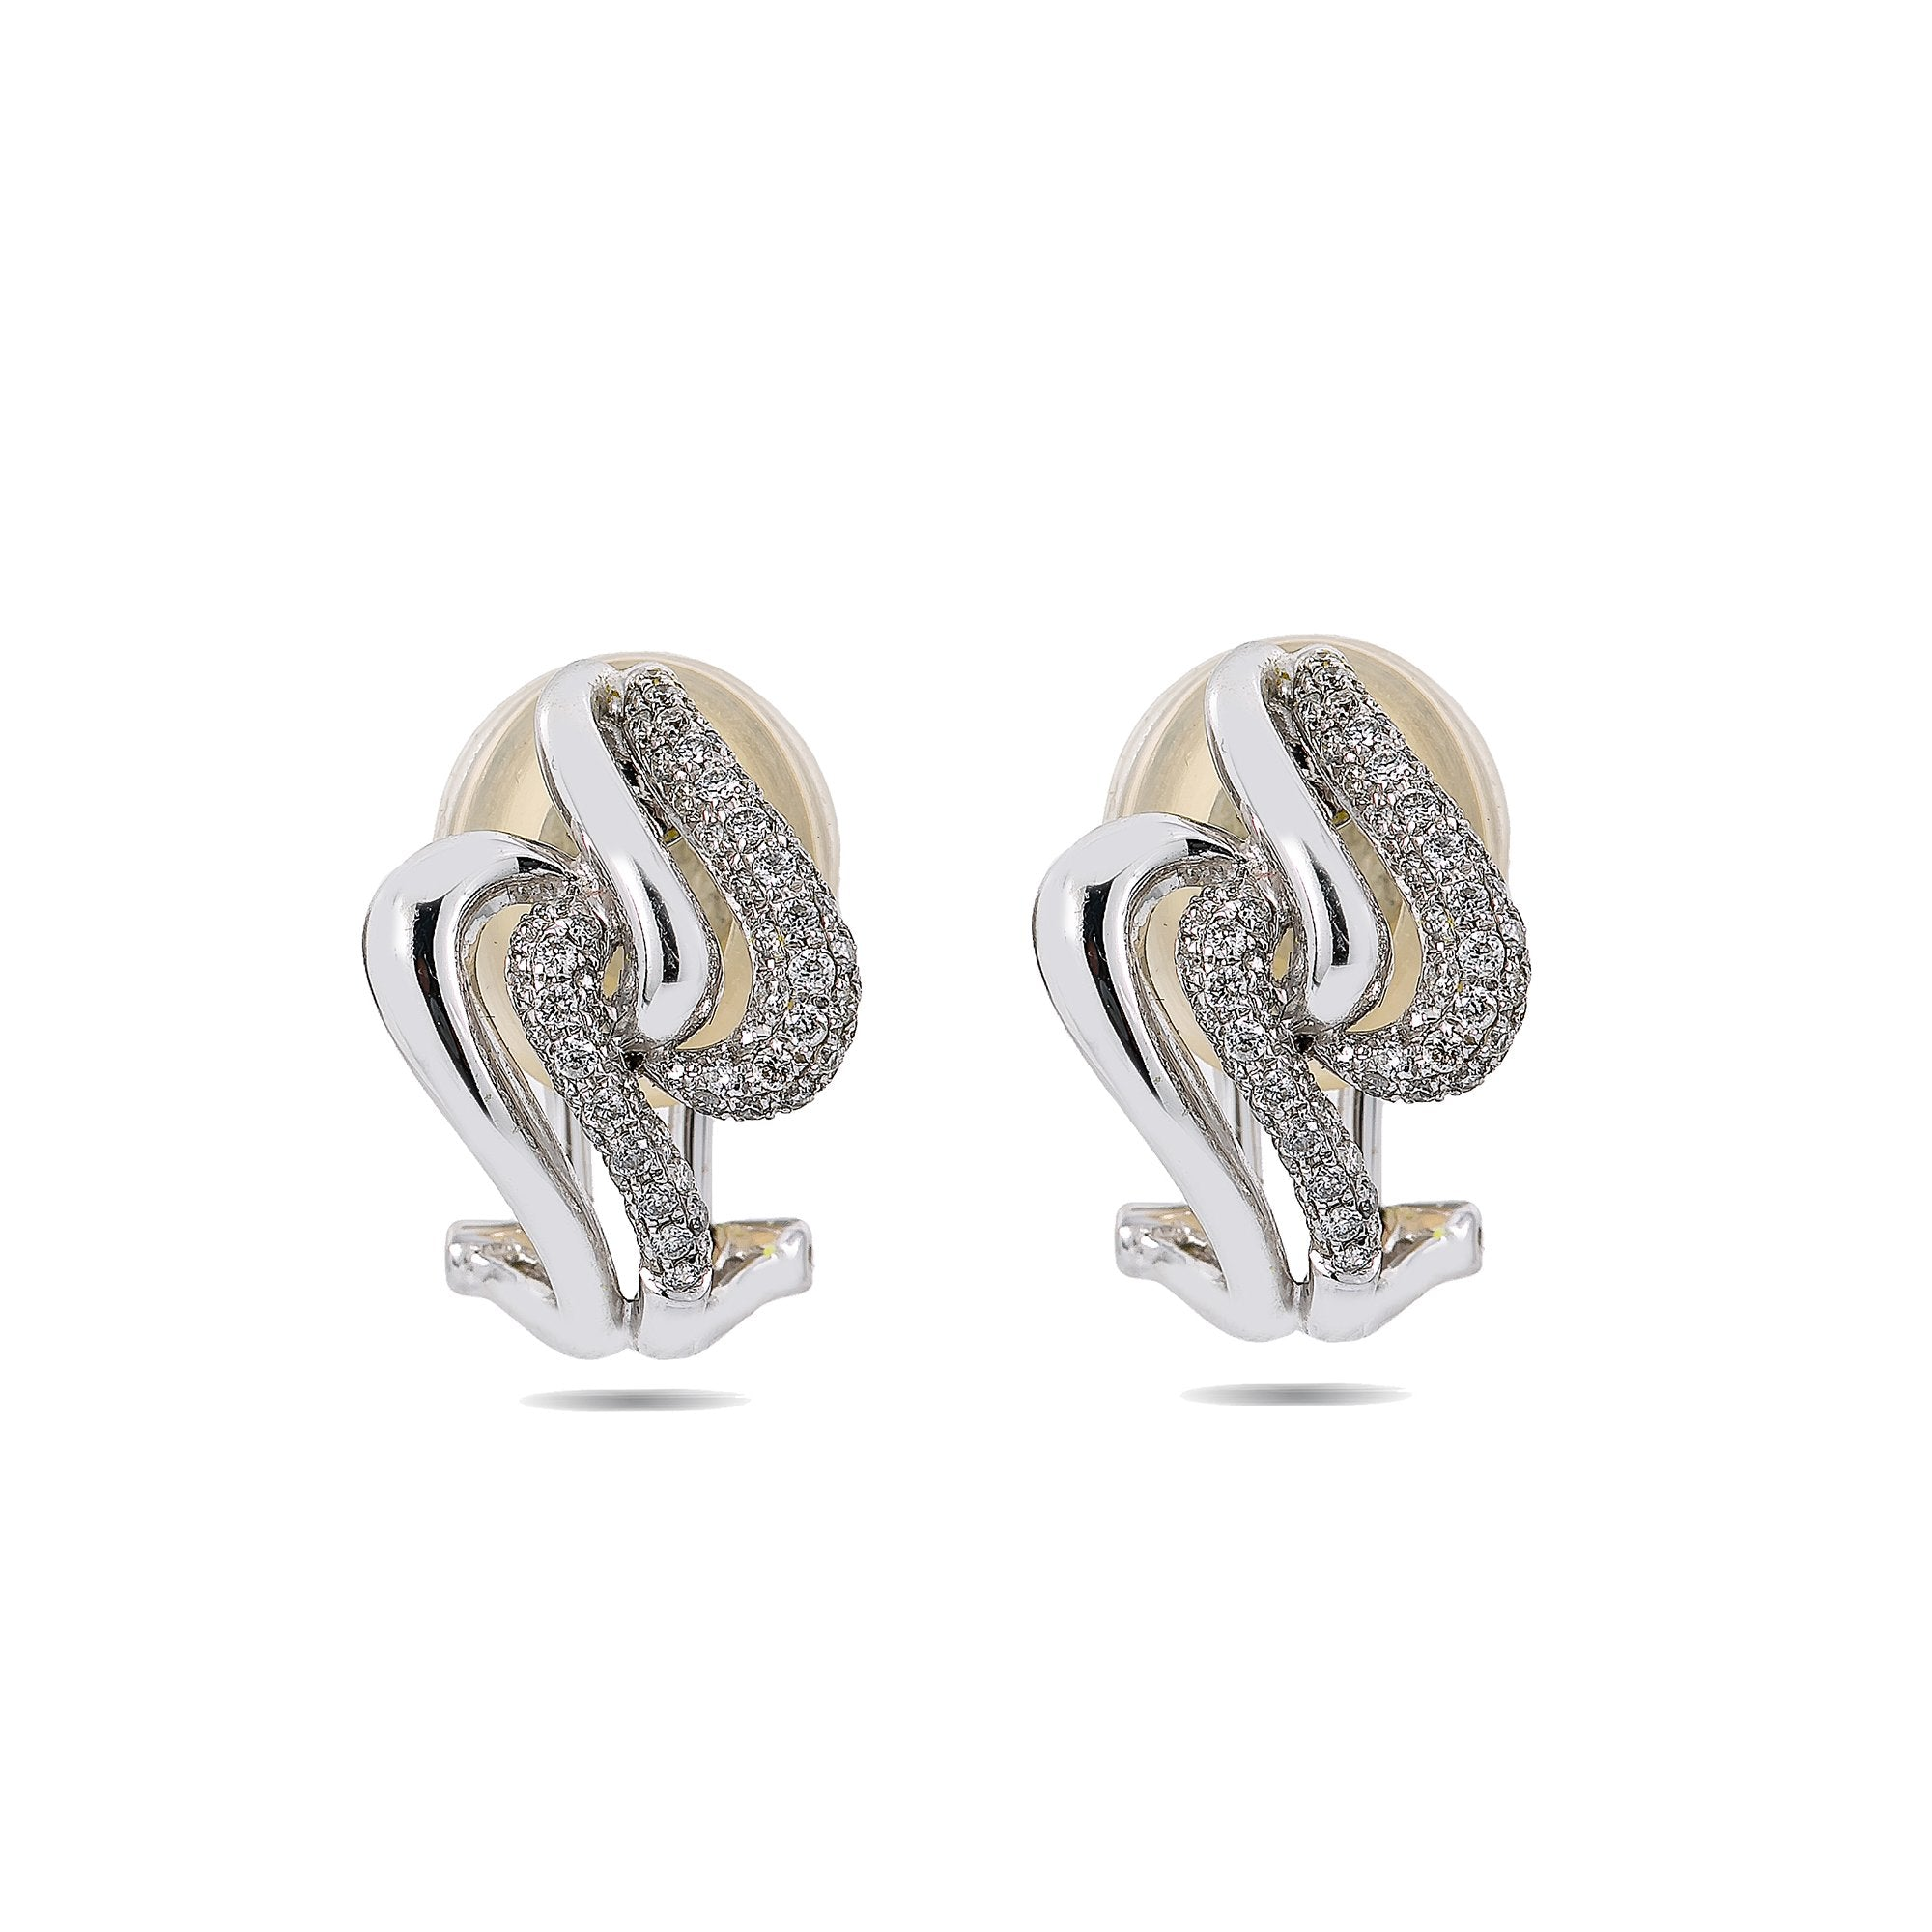 18K White Gold Ladies Drop Earrings With 0.67 CT Diamonds